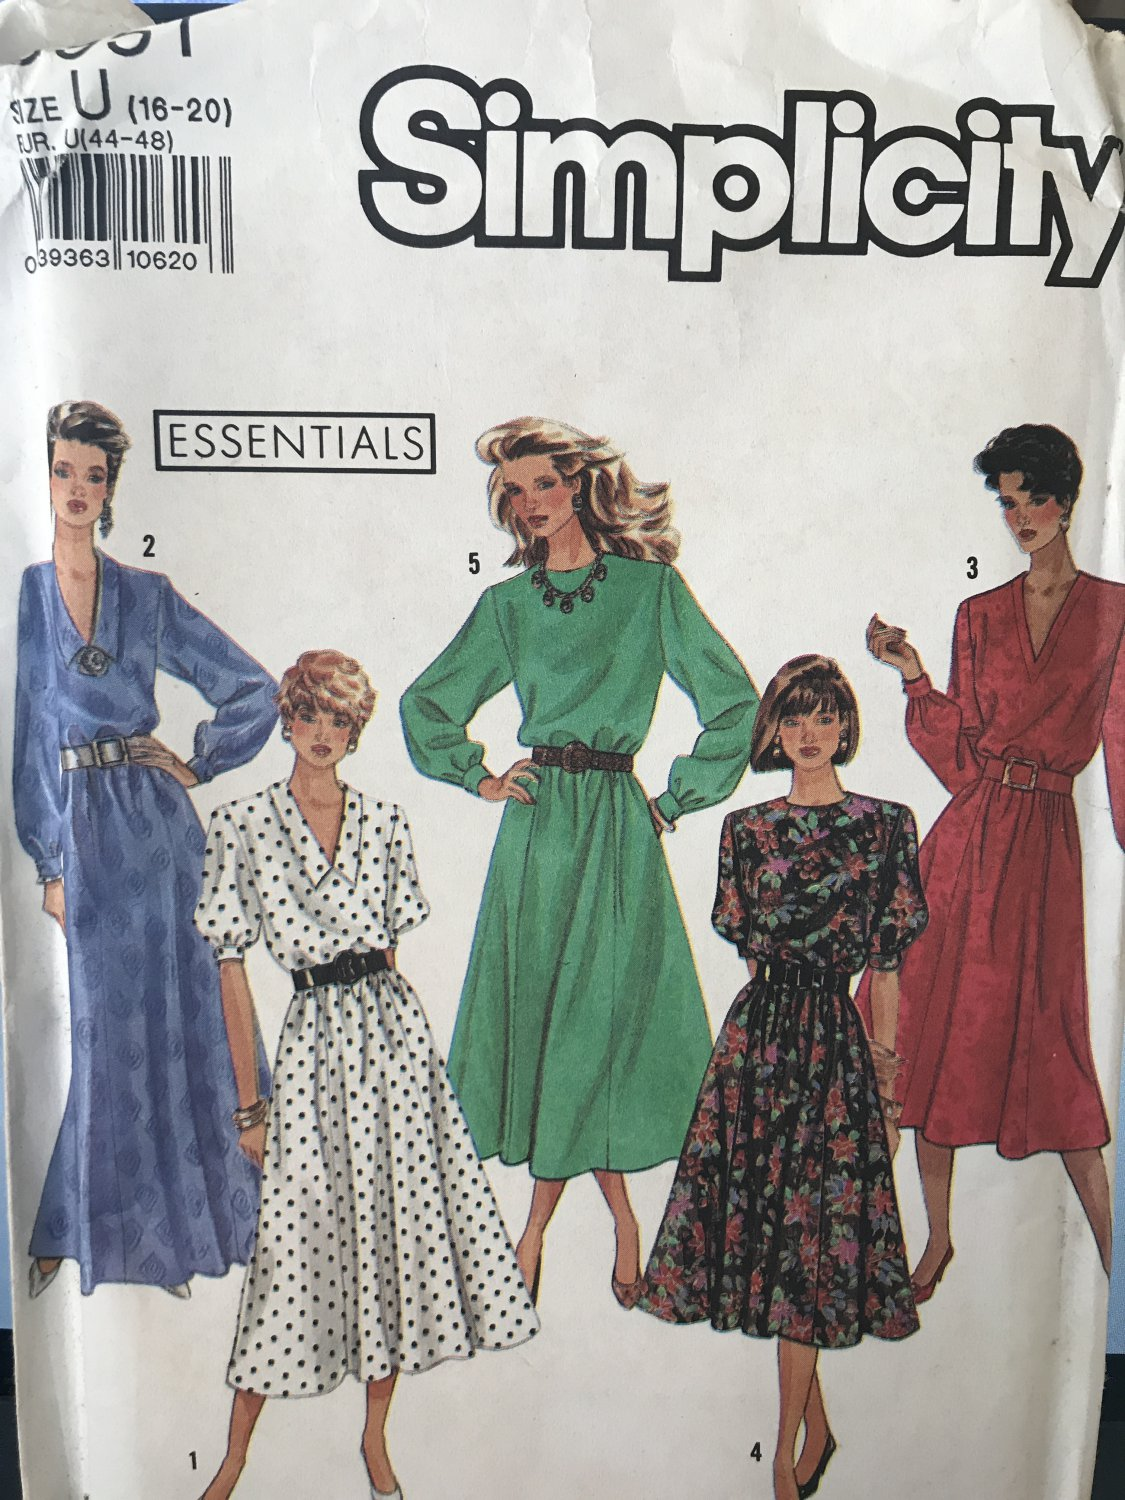 Simplicity Sewing Pattern 9951 Misses' Easy to Sew Dress in 3 lengths Size 16 - 20